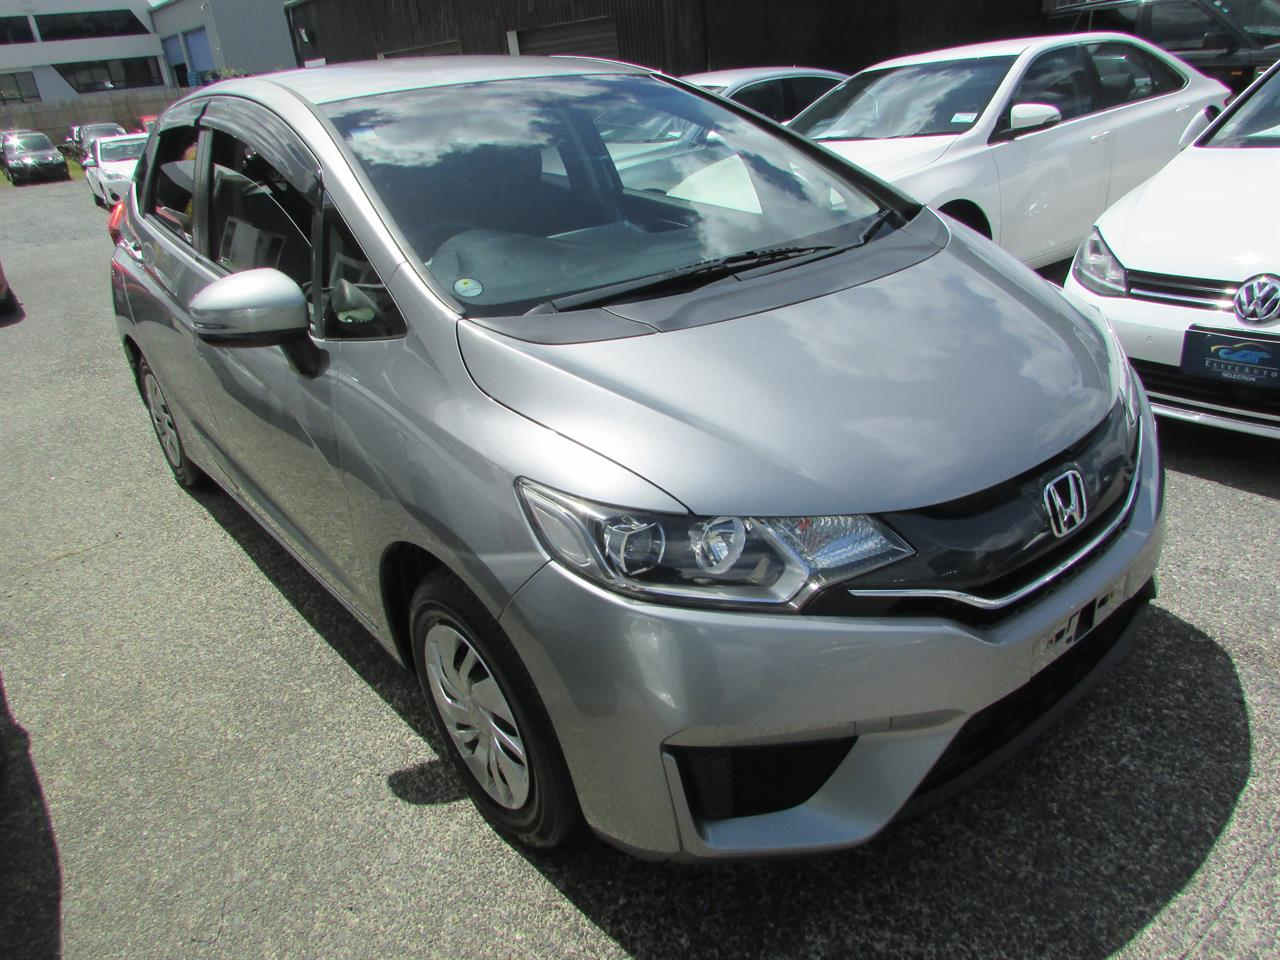 Motors Cars & Parts Cars : 2013 Honda Fit 1.3 VTEC CAMCHAIN REVERSE CAMERA